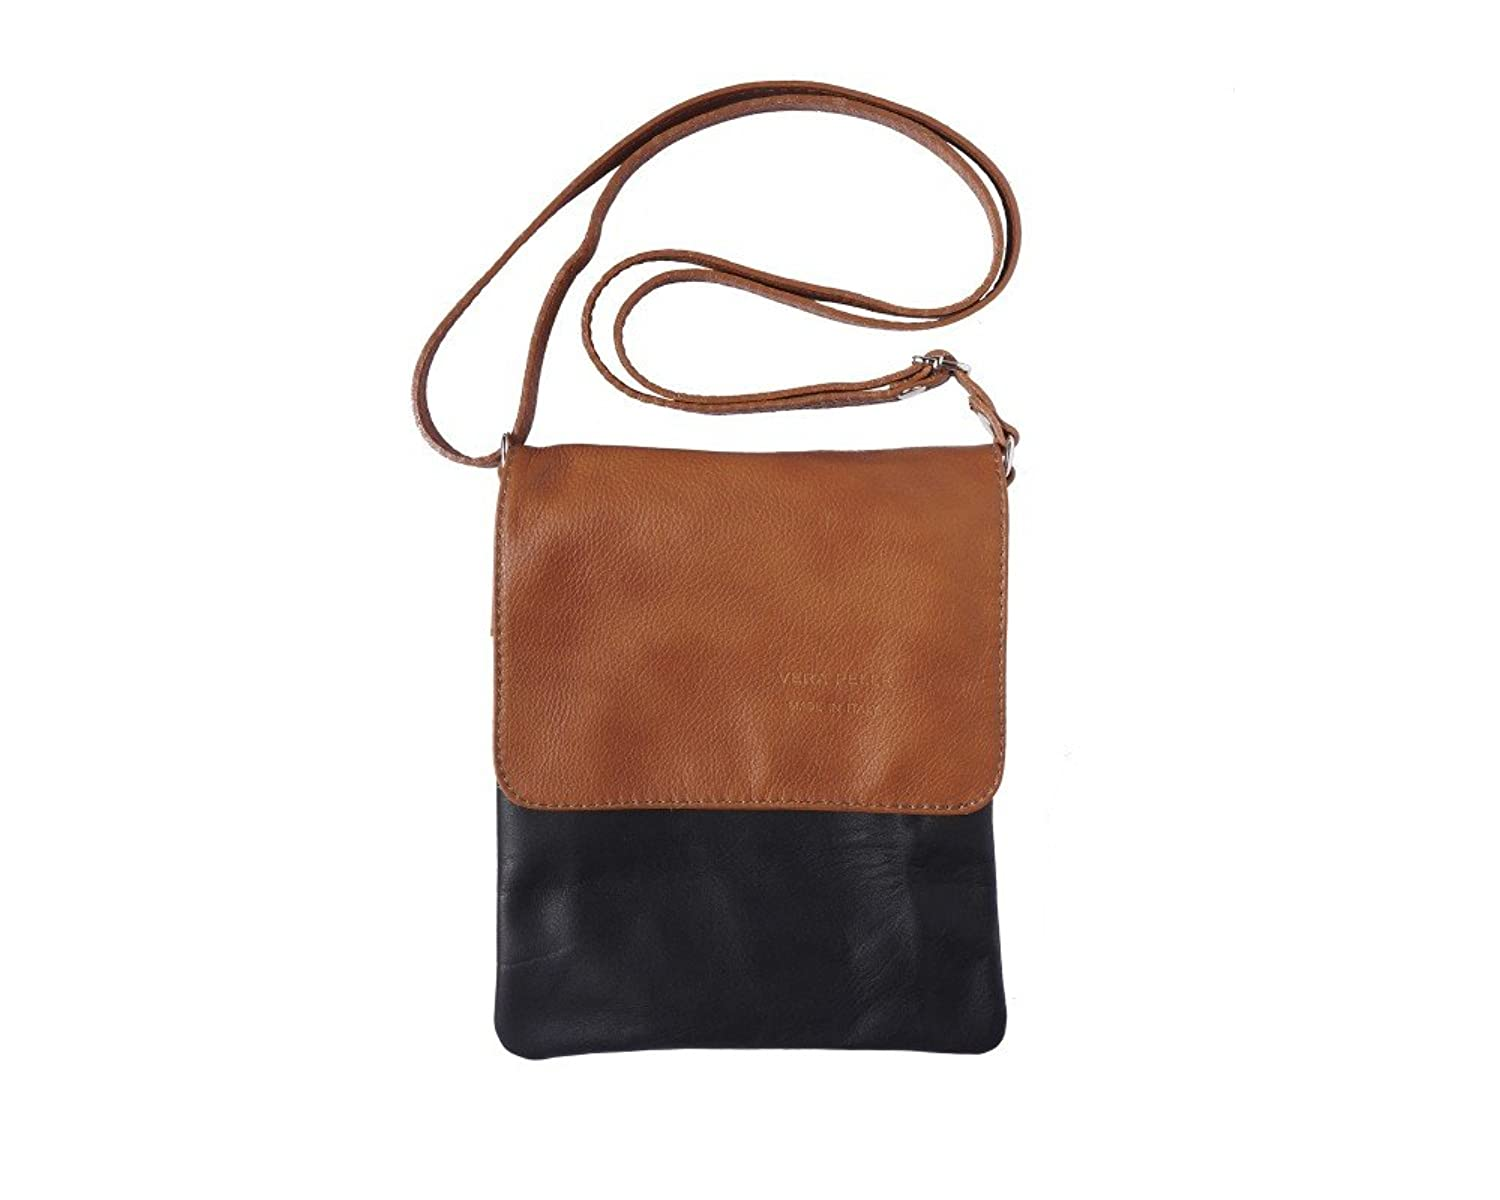 LaGaksta Ashley Very Small Italian Soft Leather Shoulder Crossbody Bag